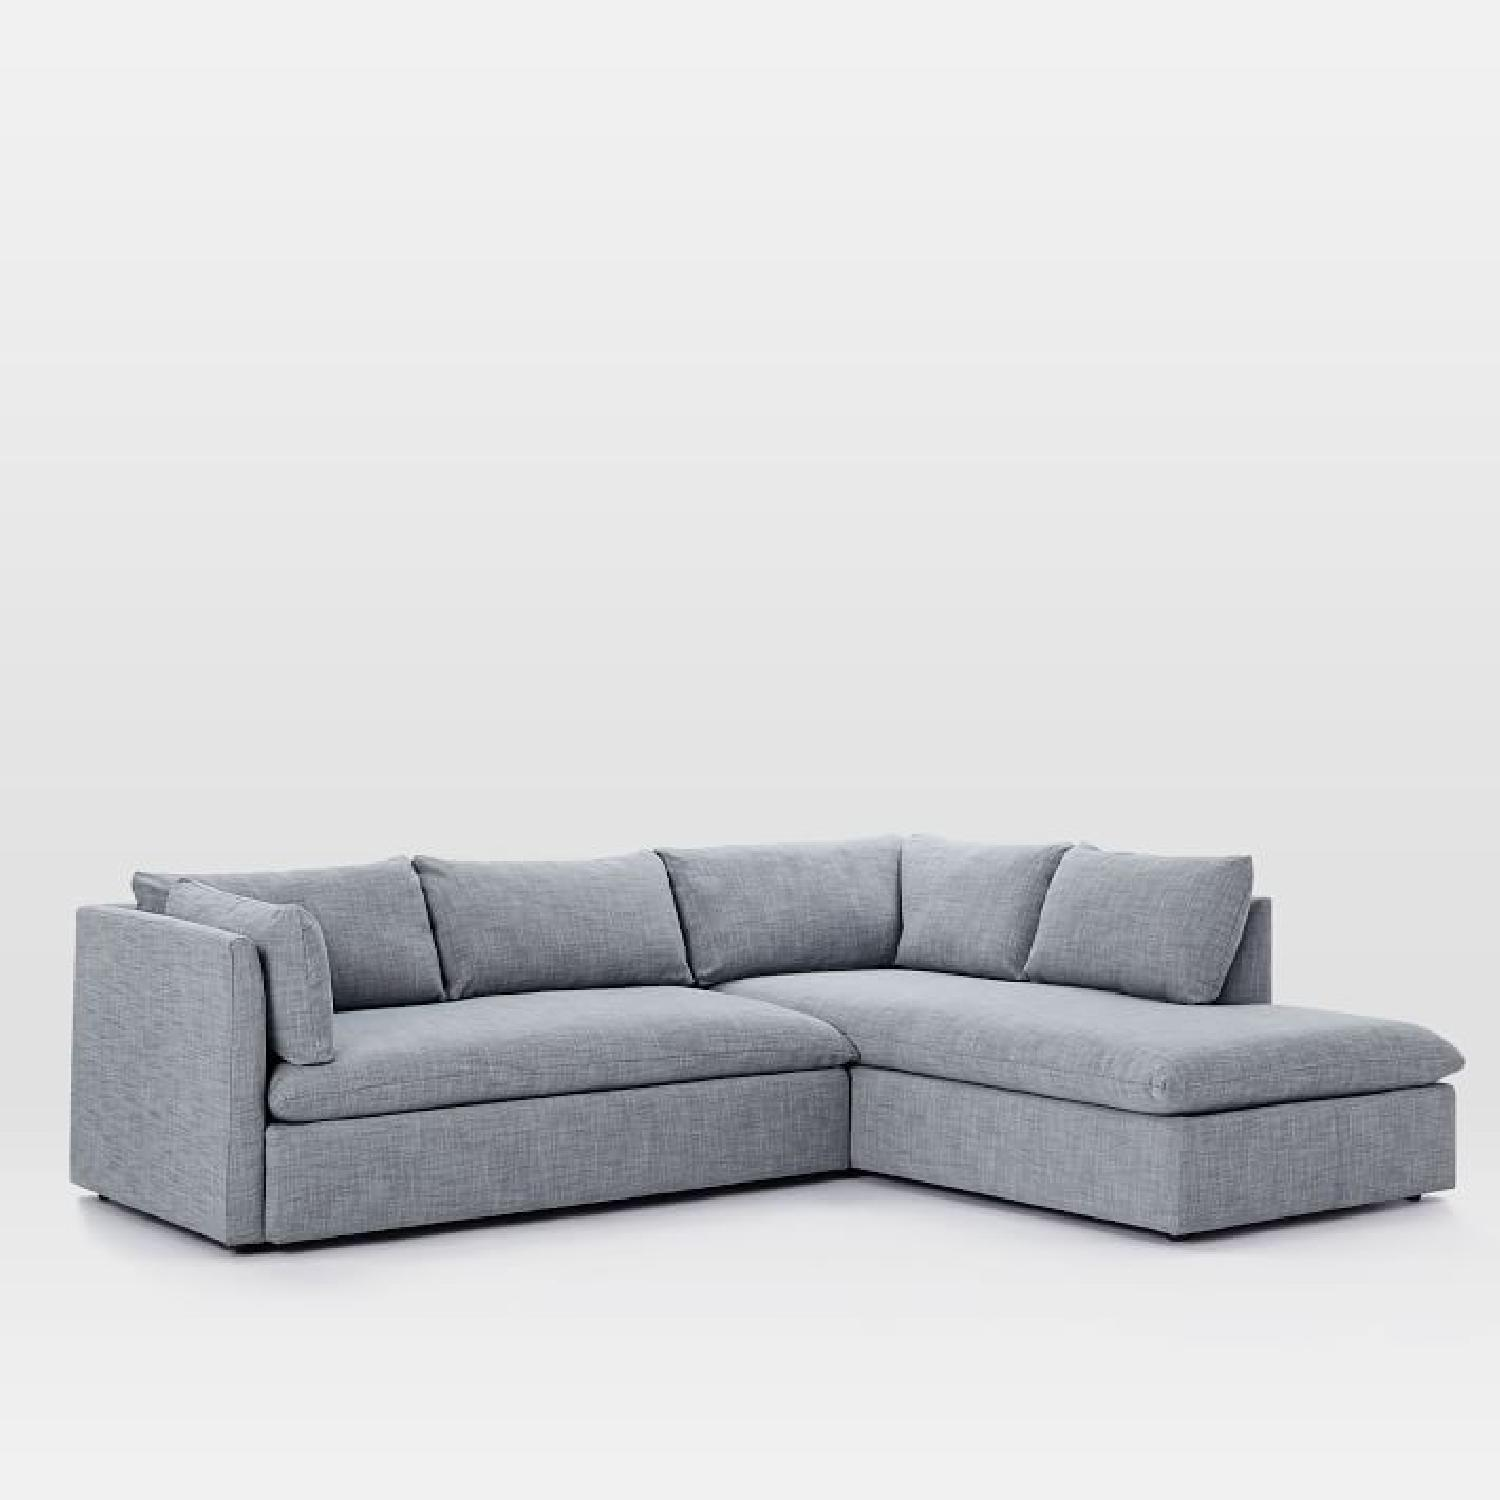 West Elm Shelter 2 Piece Terminal Chaise Sectional Sofa ...